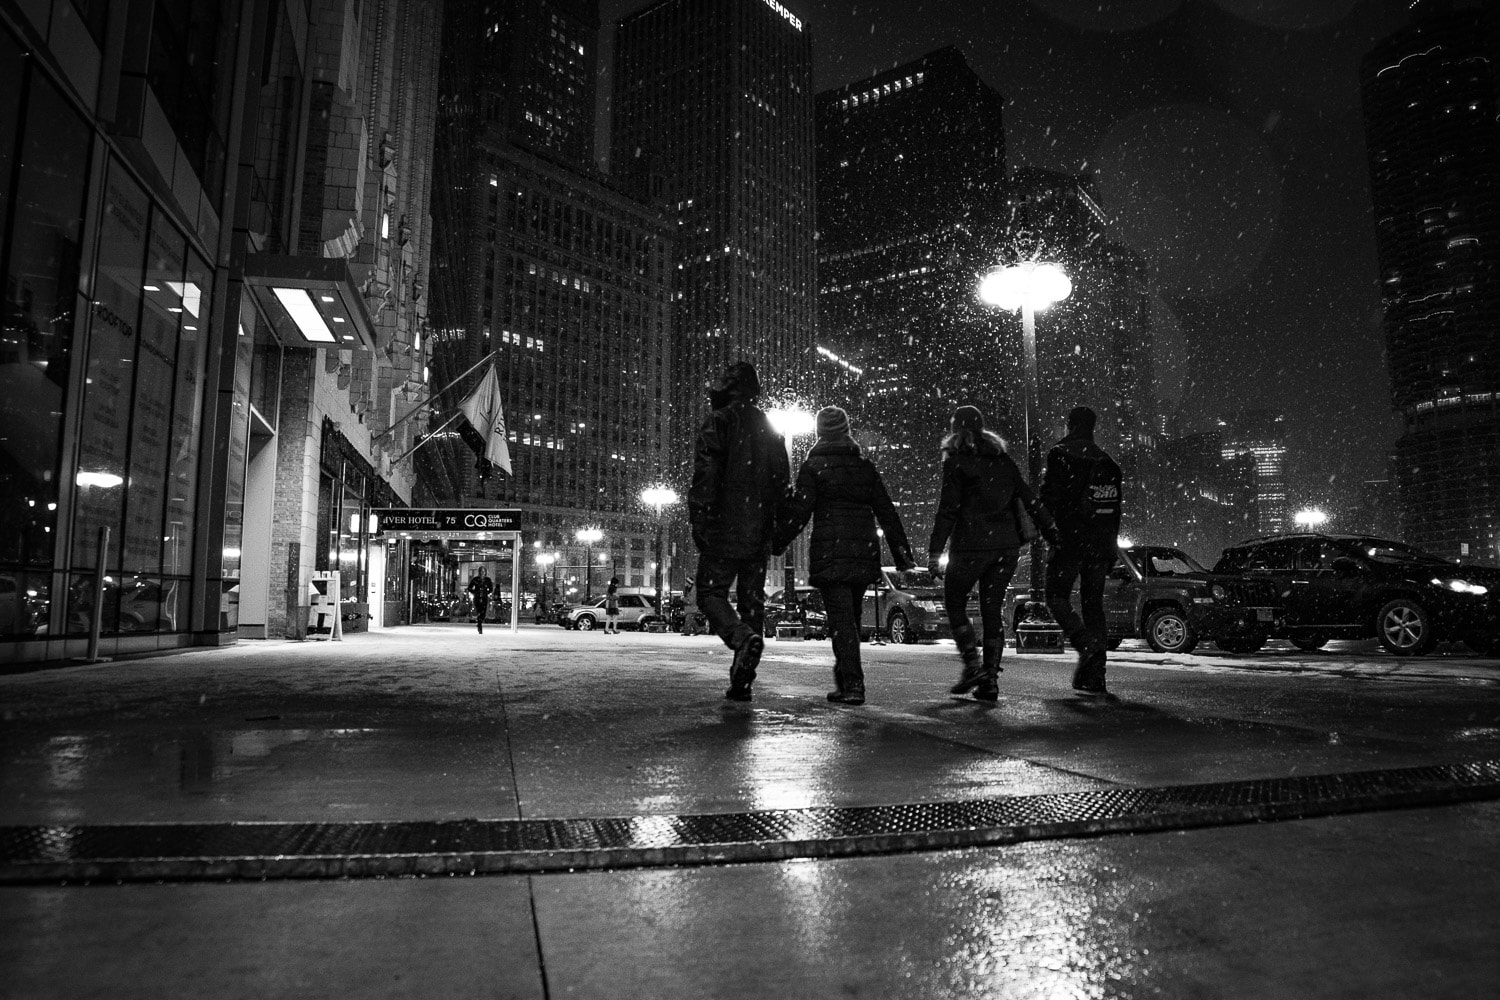 chicago-web-4-min.jpg